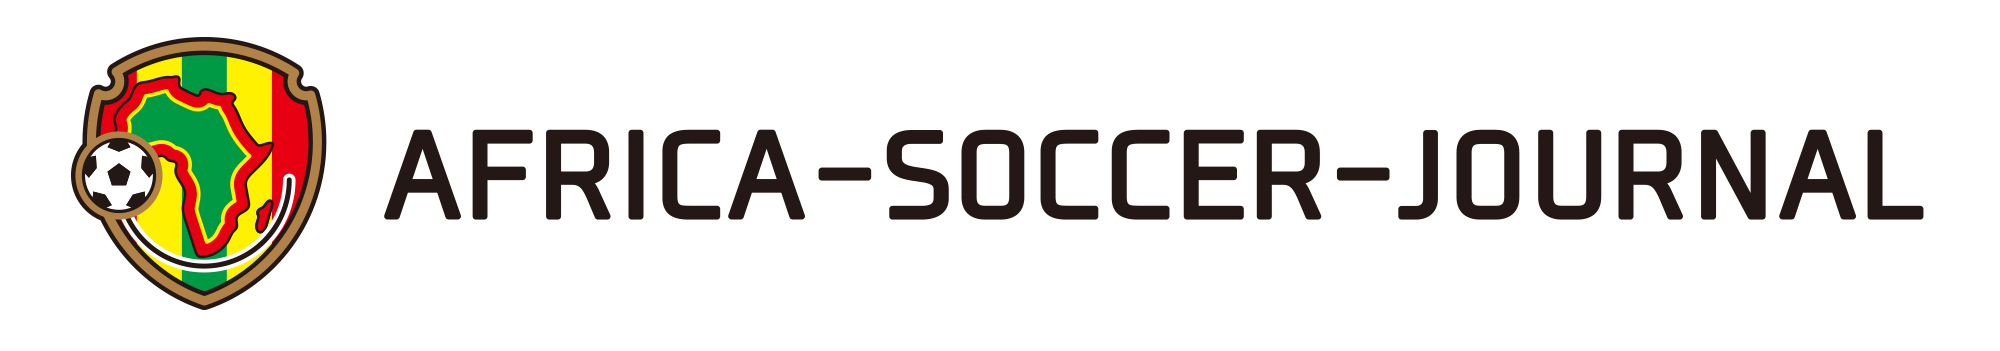 AFRICA-SOCCER-JOURNAL~アフリカサッカー最前線~